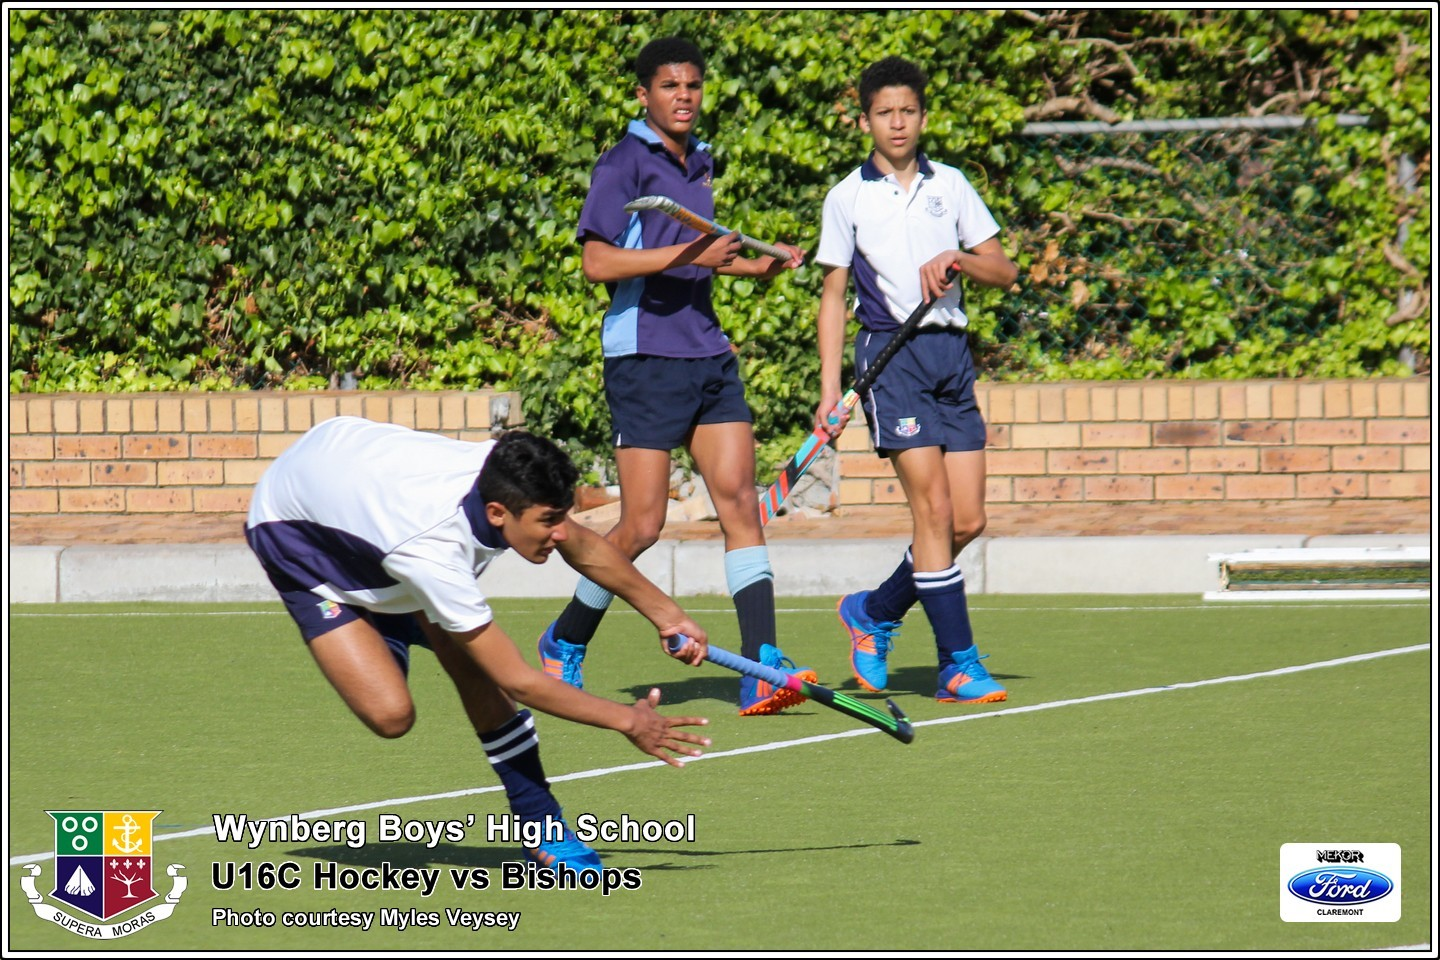 U16C vs Bishops, Friday 17 August 2018